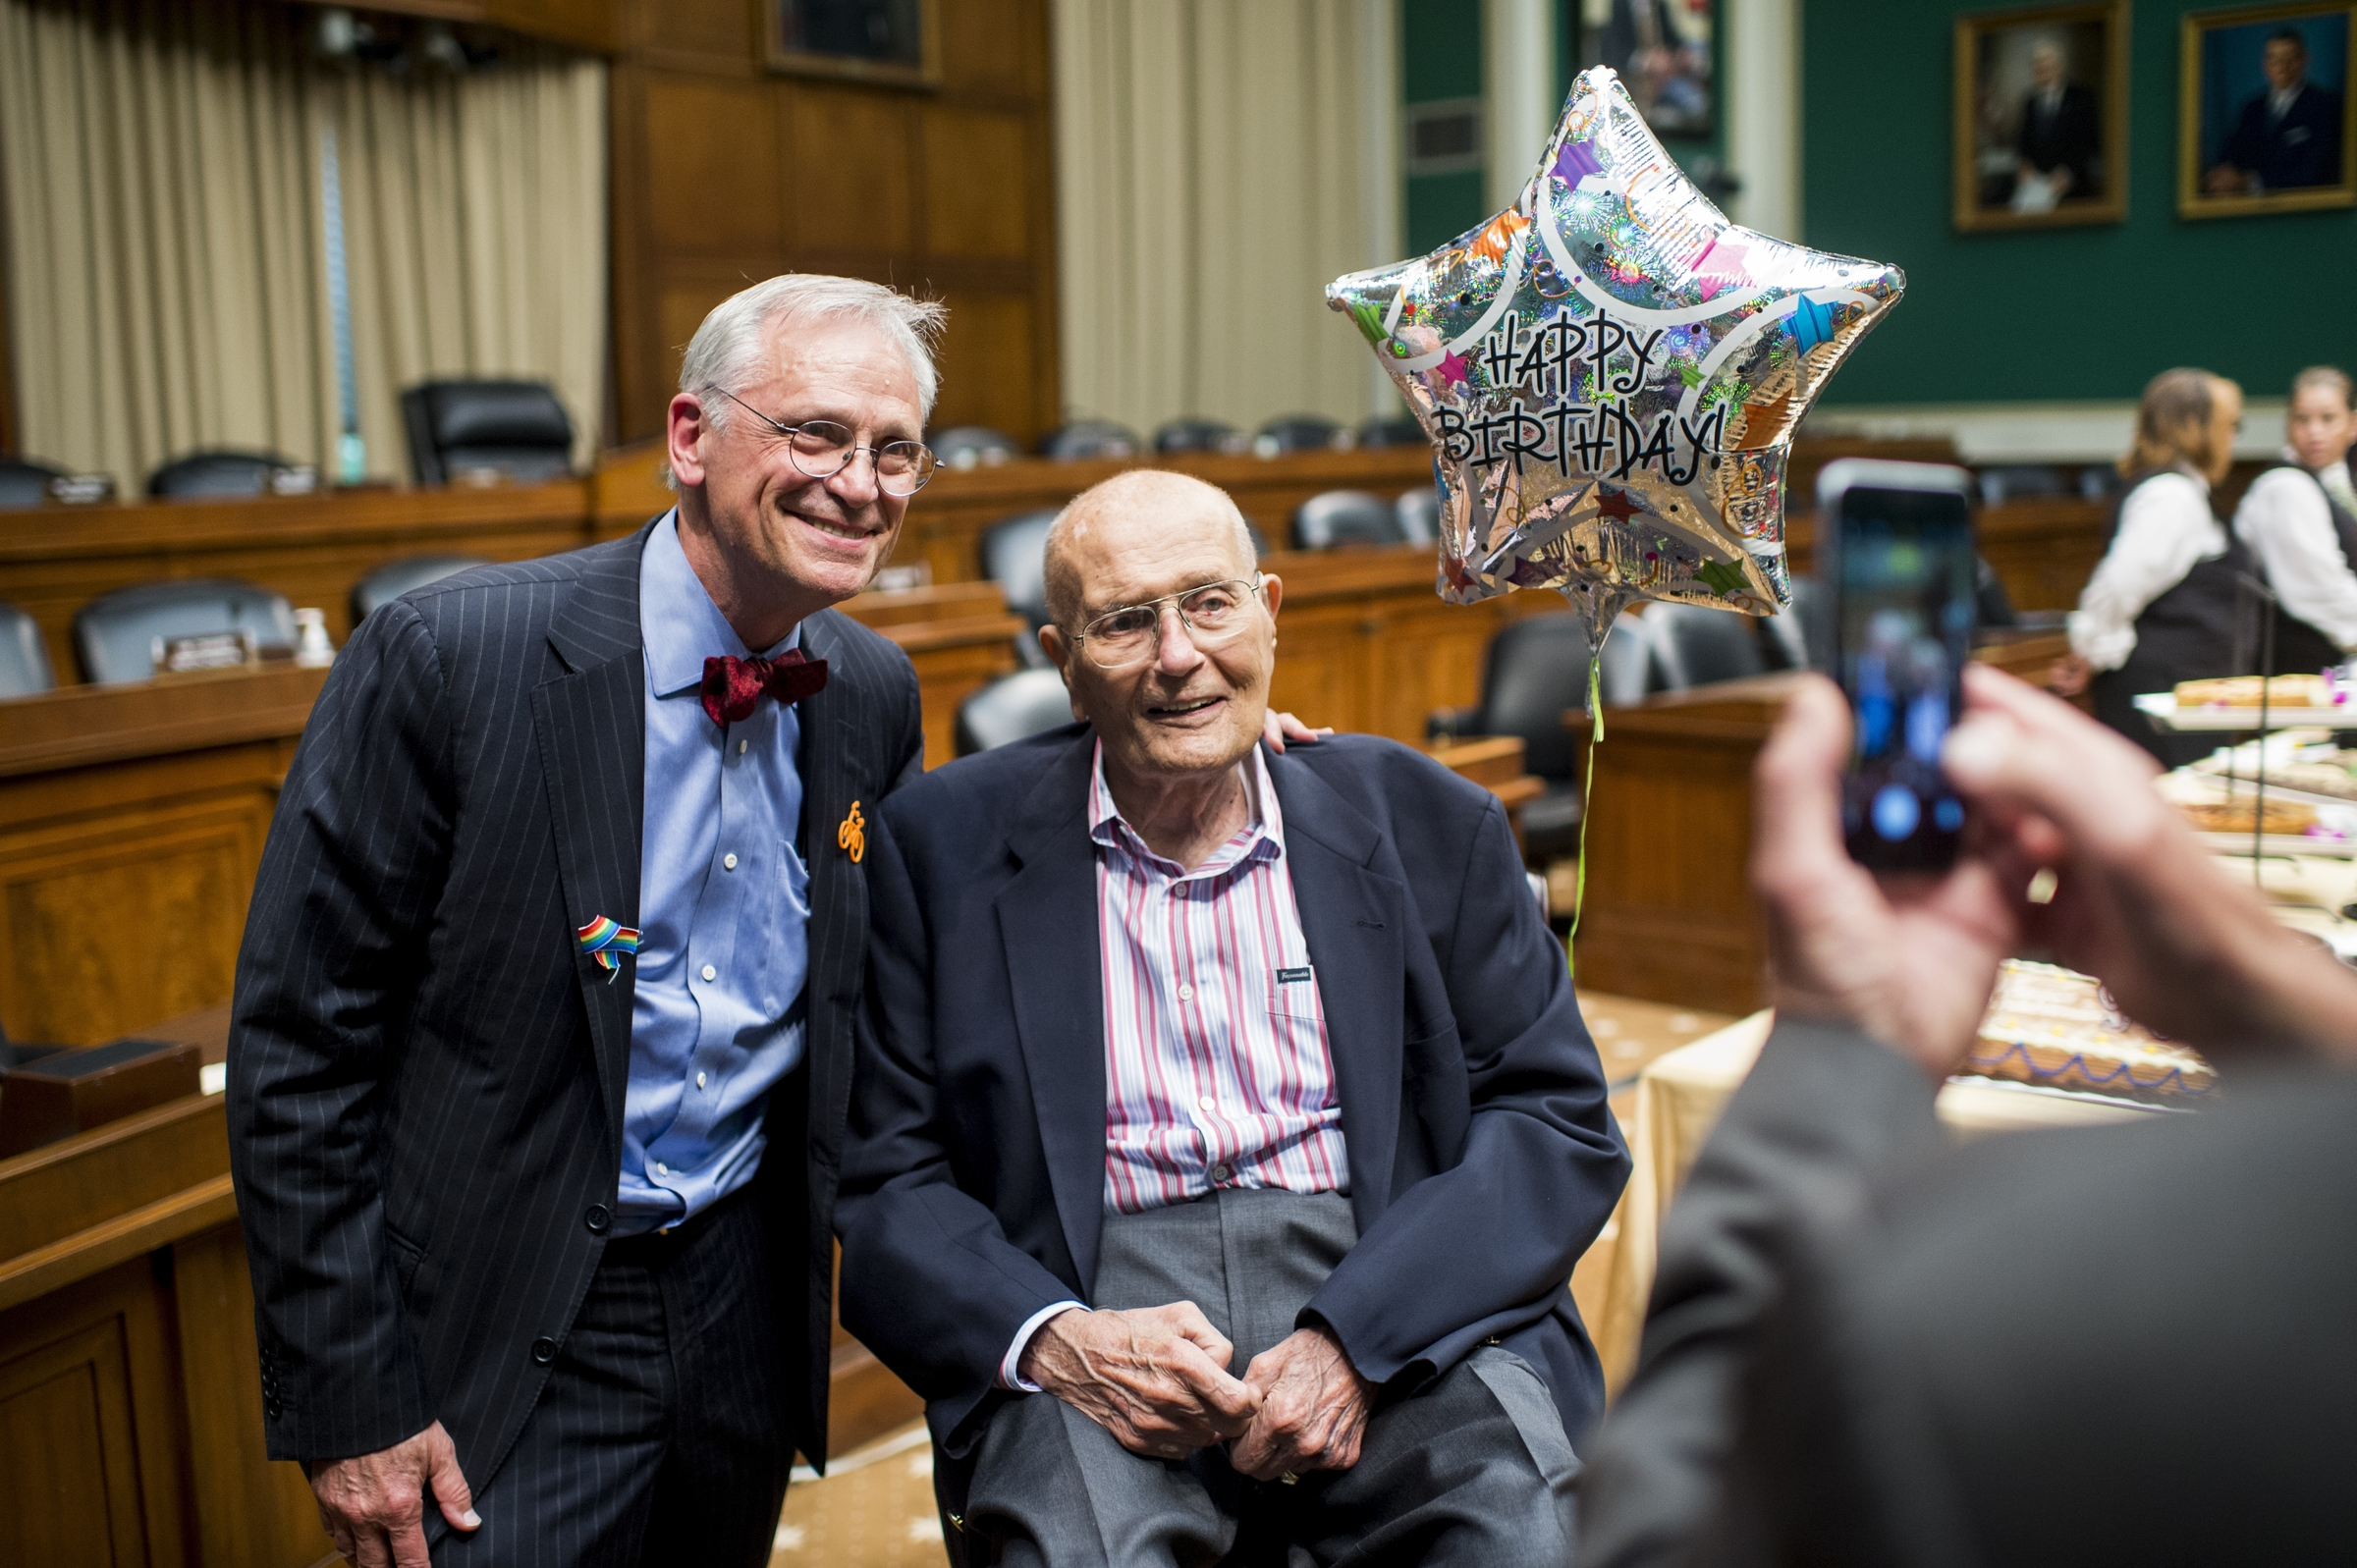 UNITED STATES - JULY 6: Rep. Earl Blumenauer, D-Ore., poses with former Rep. John Dingell, D-Mich., as Rep. Richard Hanna, R-N.Y., takes their photo in the House Energy and Commerce Committee hearing room, also known as the John Dingell Room, on Wednesday, July 6, 2016. Dingell is celebrating his 90th birthday. In the background are Reps. Joe Barton, R-Texas and Gene Green, D-Texas. (Photo By Bill Clark/CQ Roll Call)